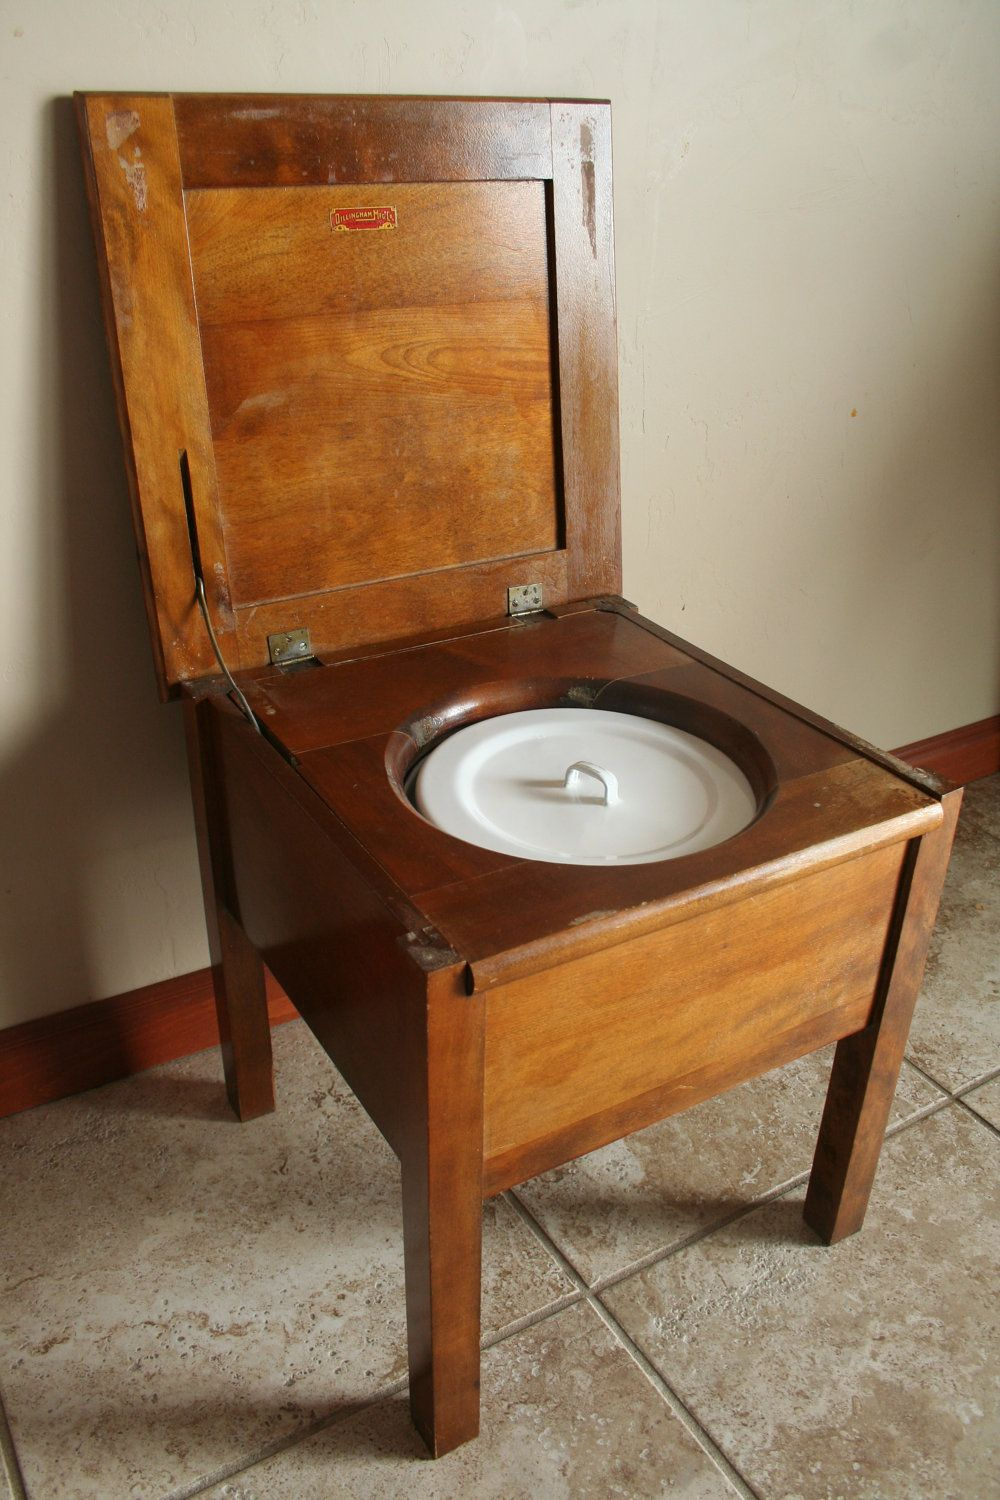 Antique Commode Chair - Wood with White and Blue Porcelain Chamber Pot with  Handle - Dillinghman Manufacturing Company - T. Elkins: Chamber Commode 1897 I AM BLACK.. Pinterest